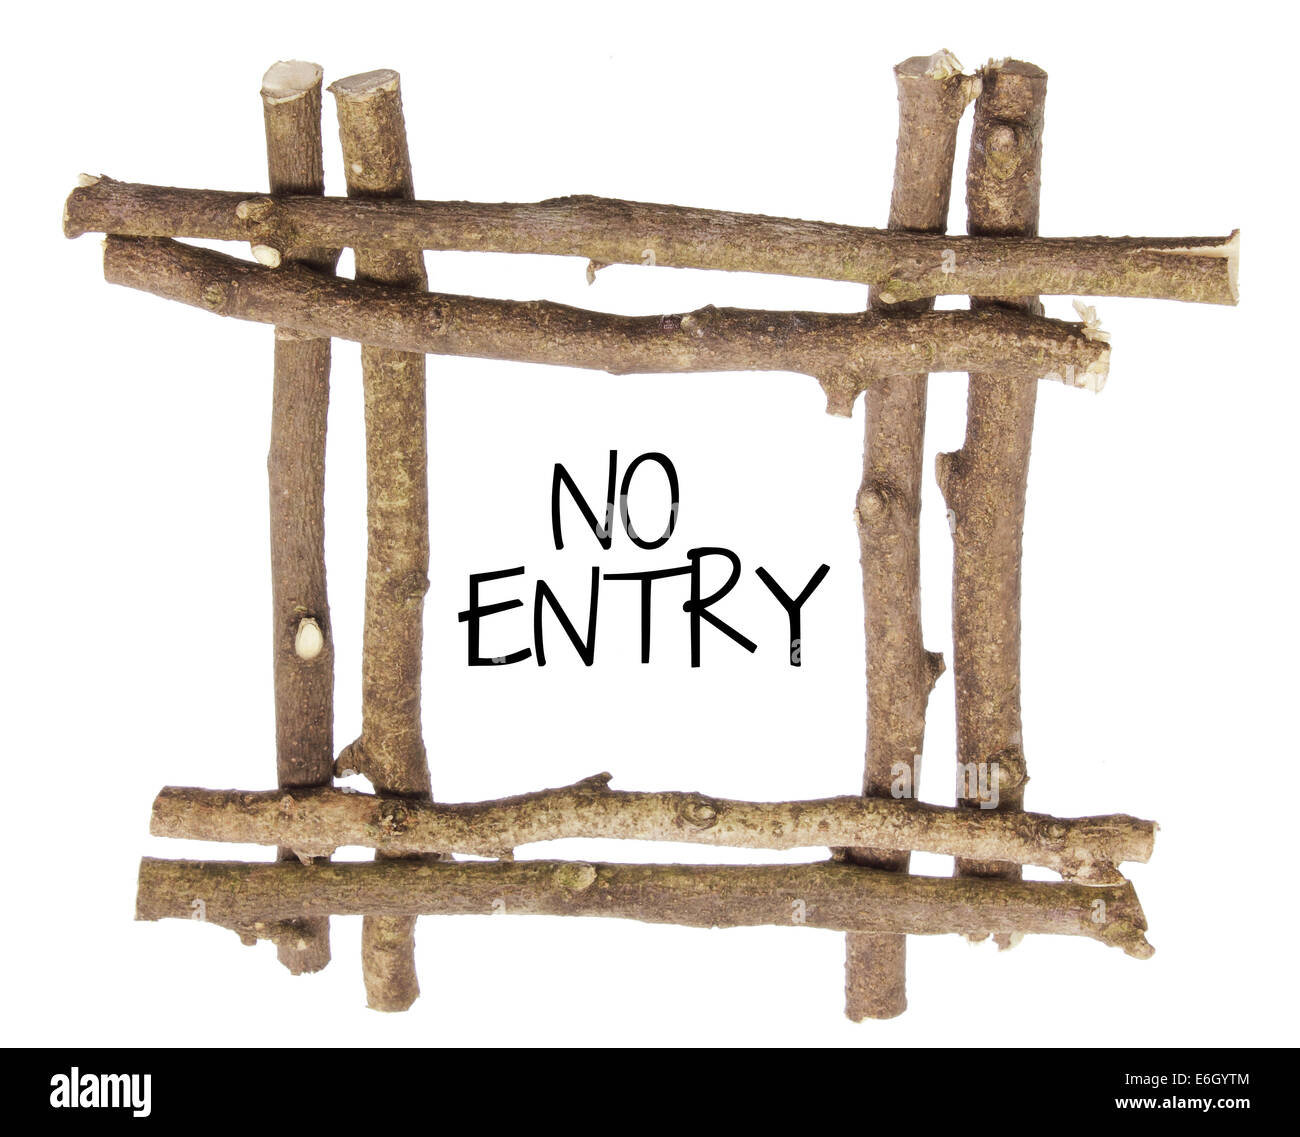 No Entry Sign with Twigs - Stock Image